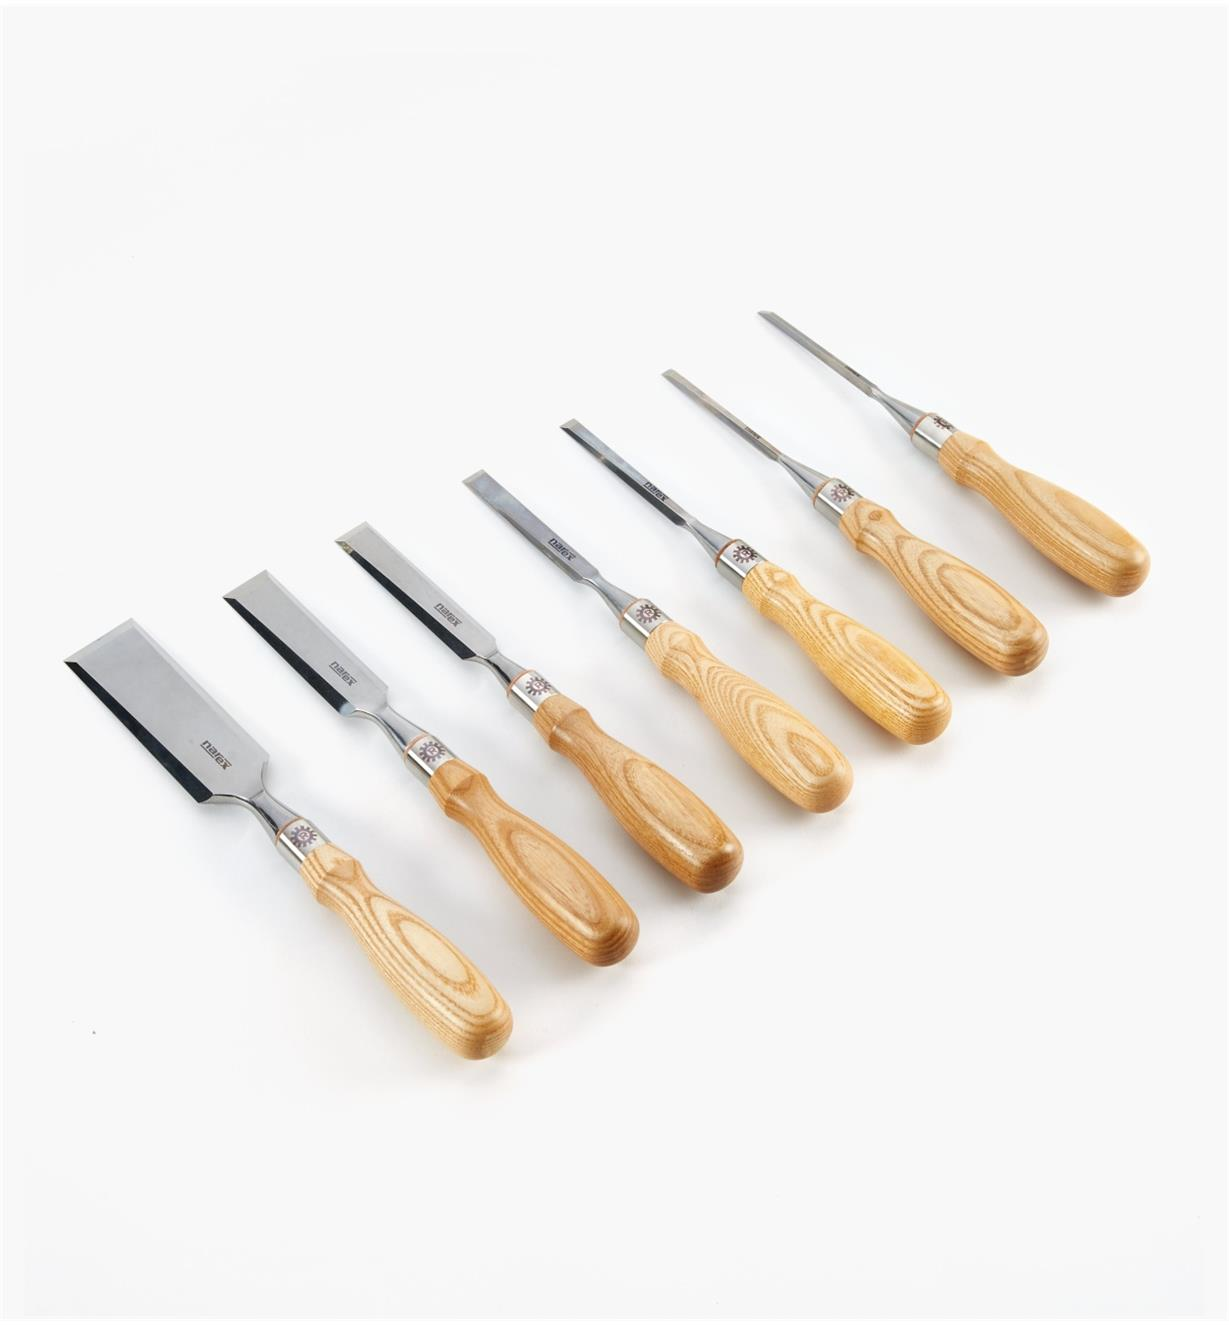 "10S1130 - Set of 7 Narex Richter Chisels (1/8"", 1/4"", 3/8"", 1/2"", 3/4"", 1"", 1 1/2"")"